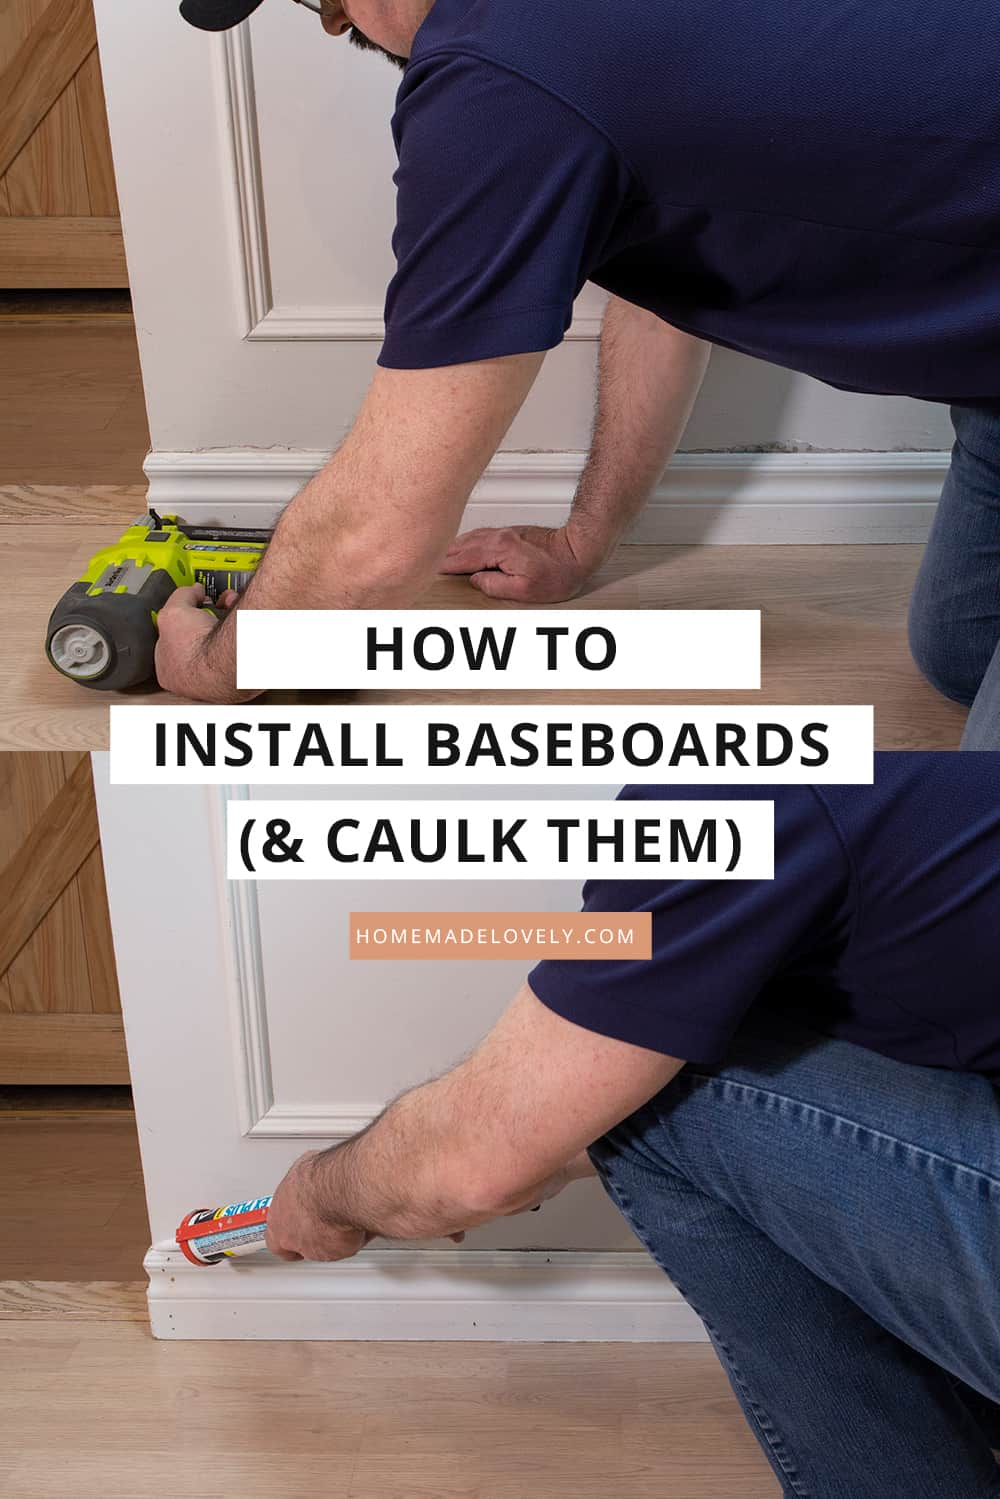 man demonstrating how to install and caulk baseboards with descriptive overlay